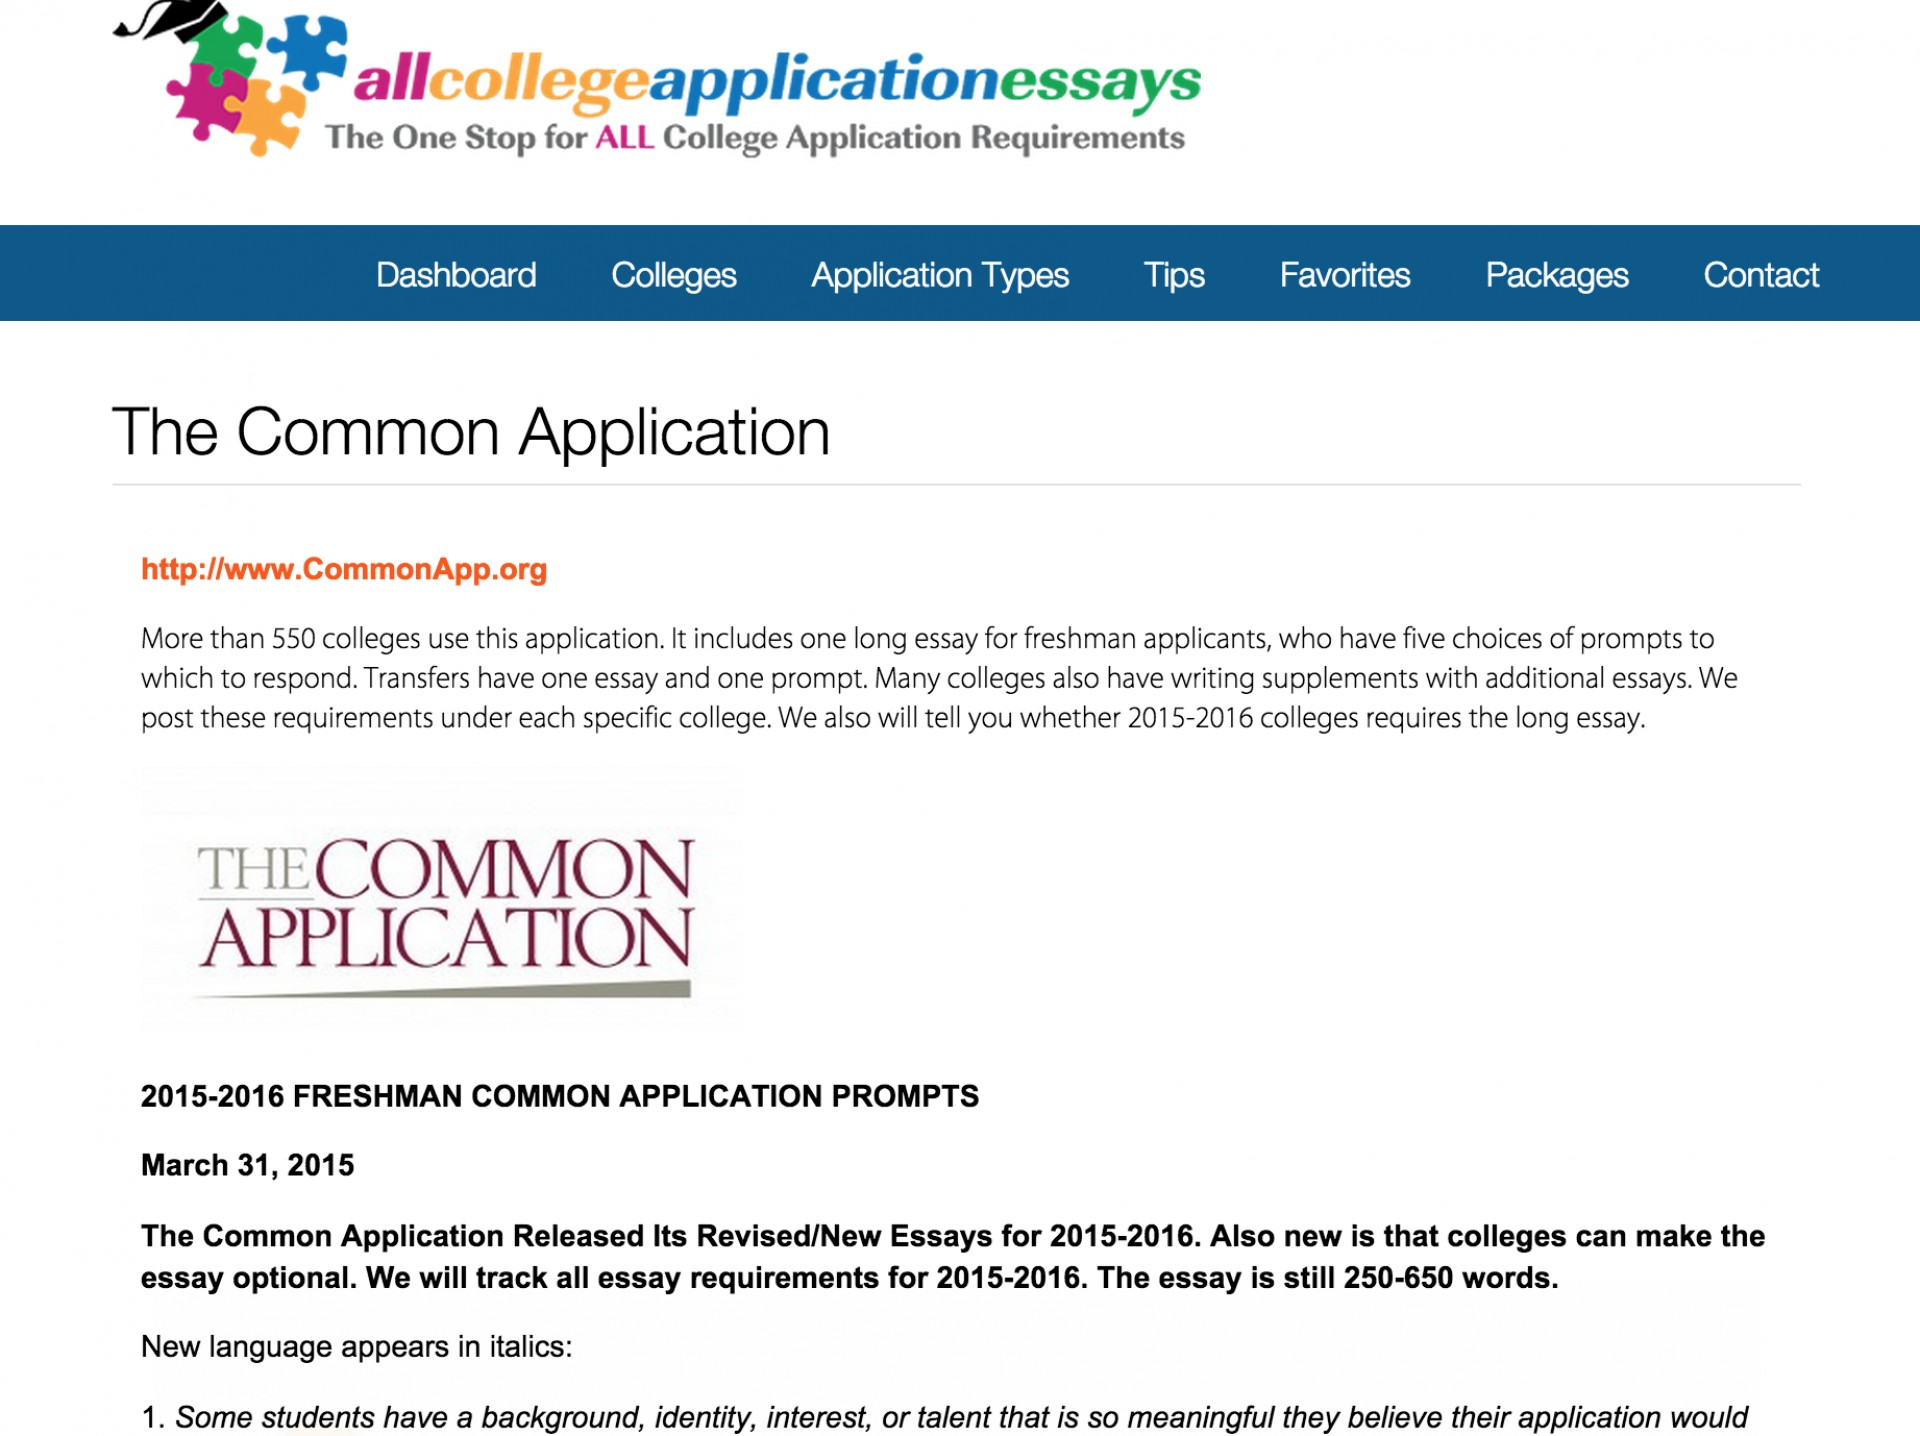 006 Screen Shot At Pm Common Application Essay Prompts Surprising 2015 App 1920